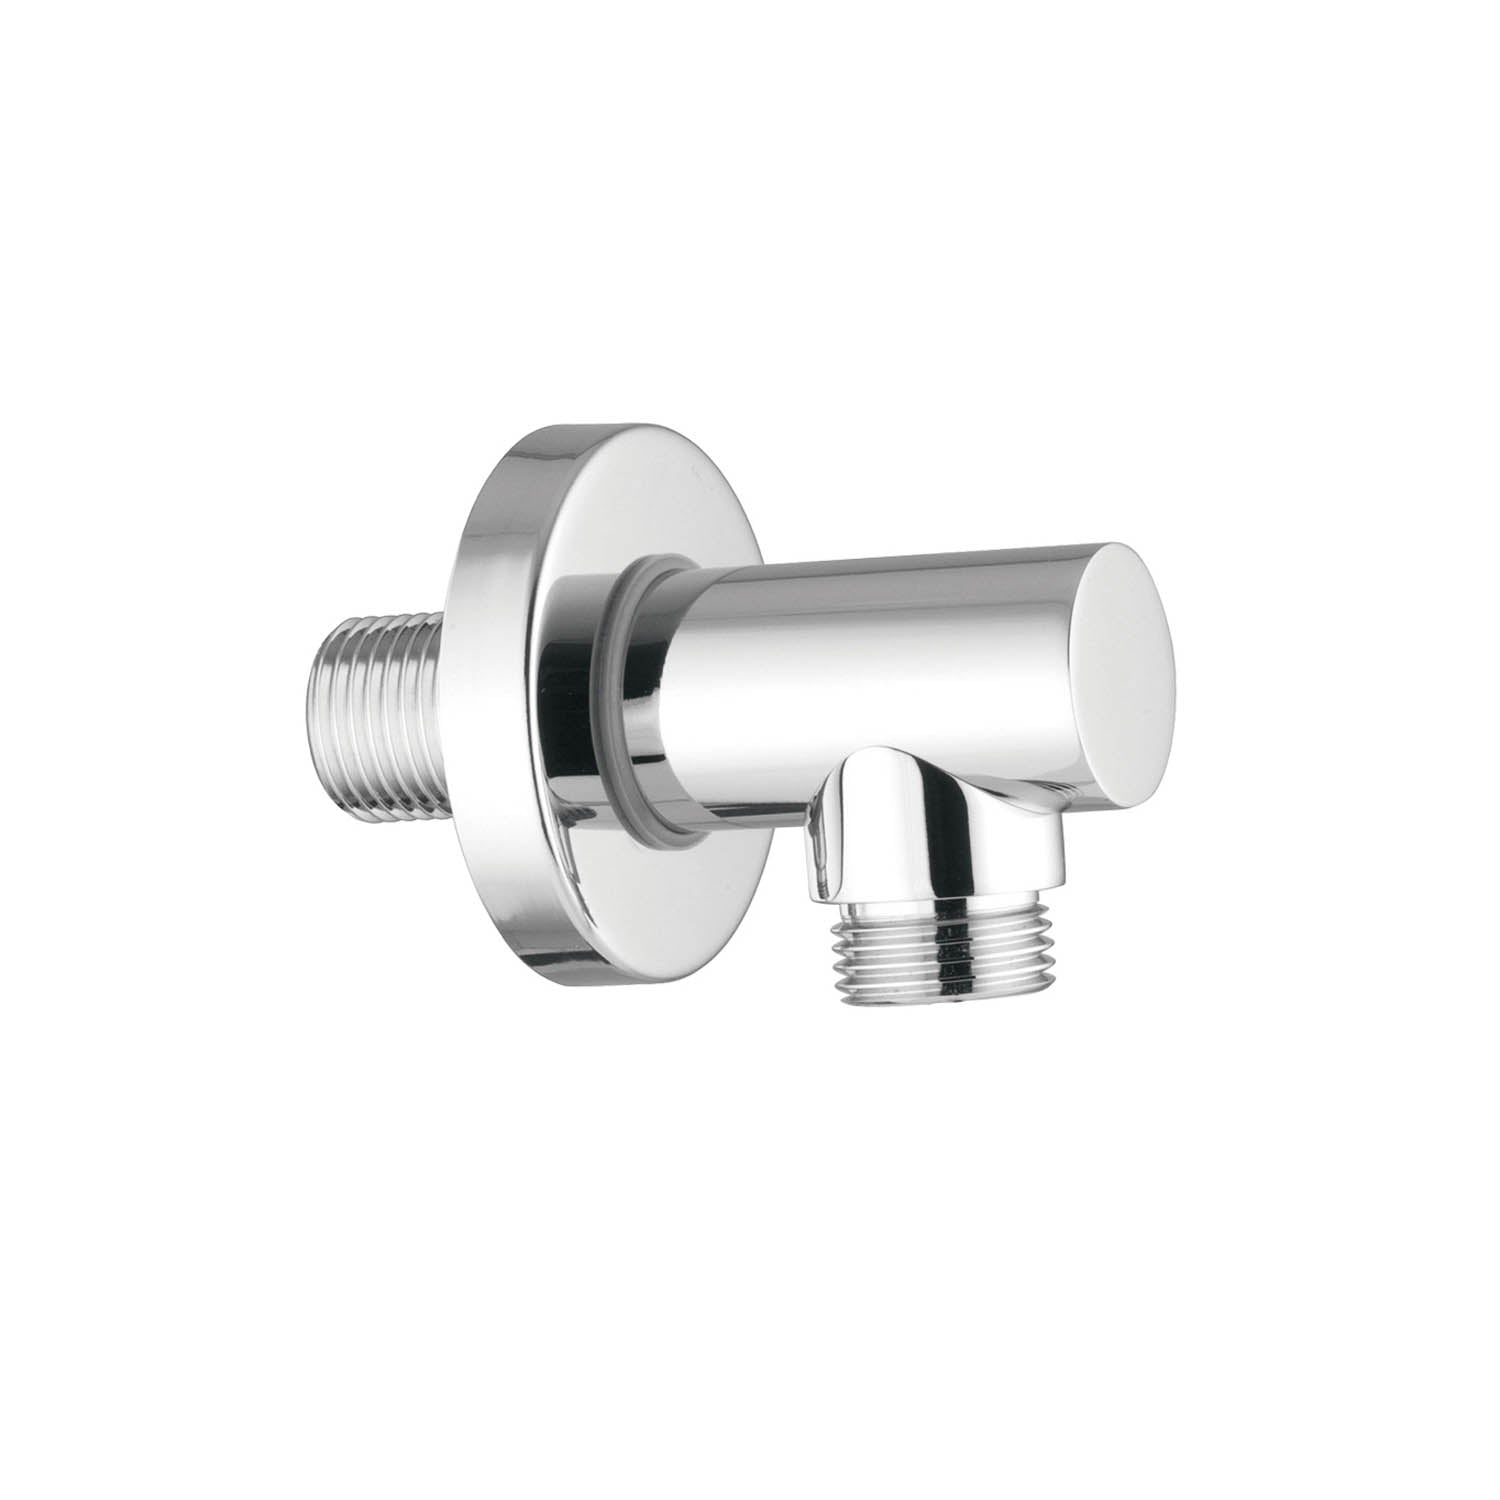 Modale Shower Outlet Elbow with a chrome finish on a white background